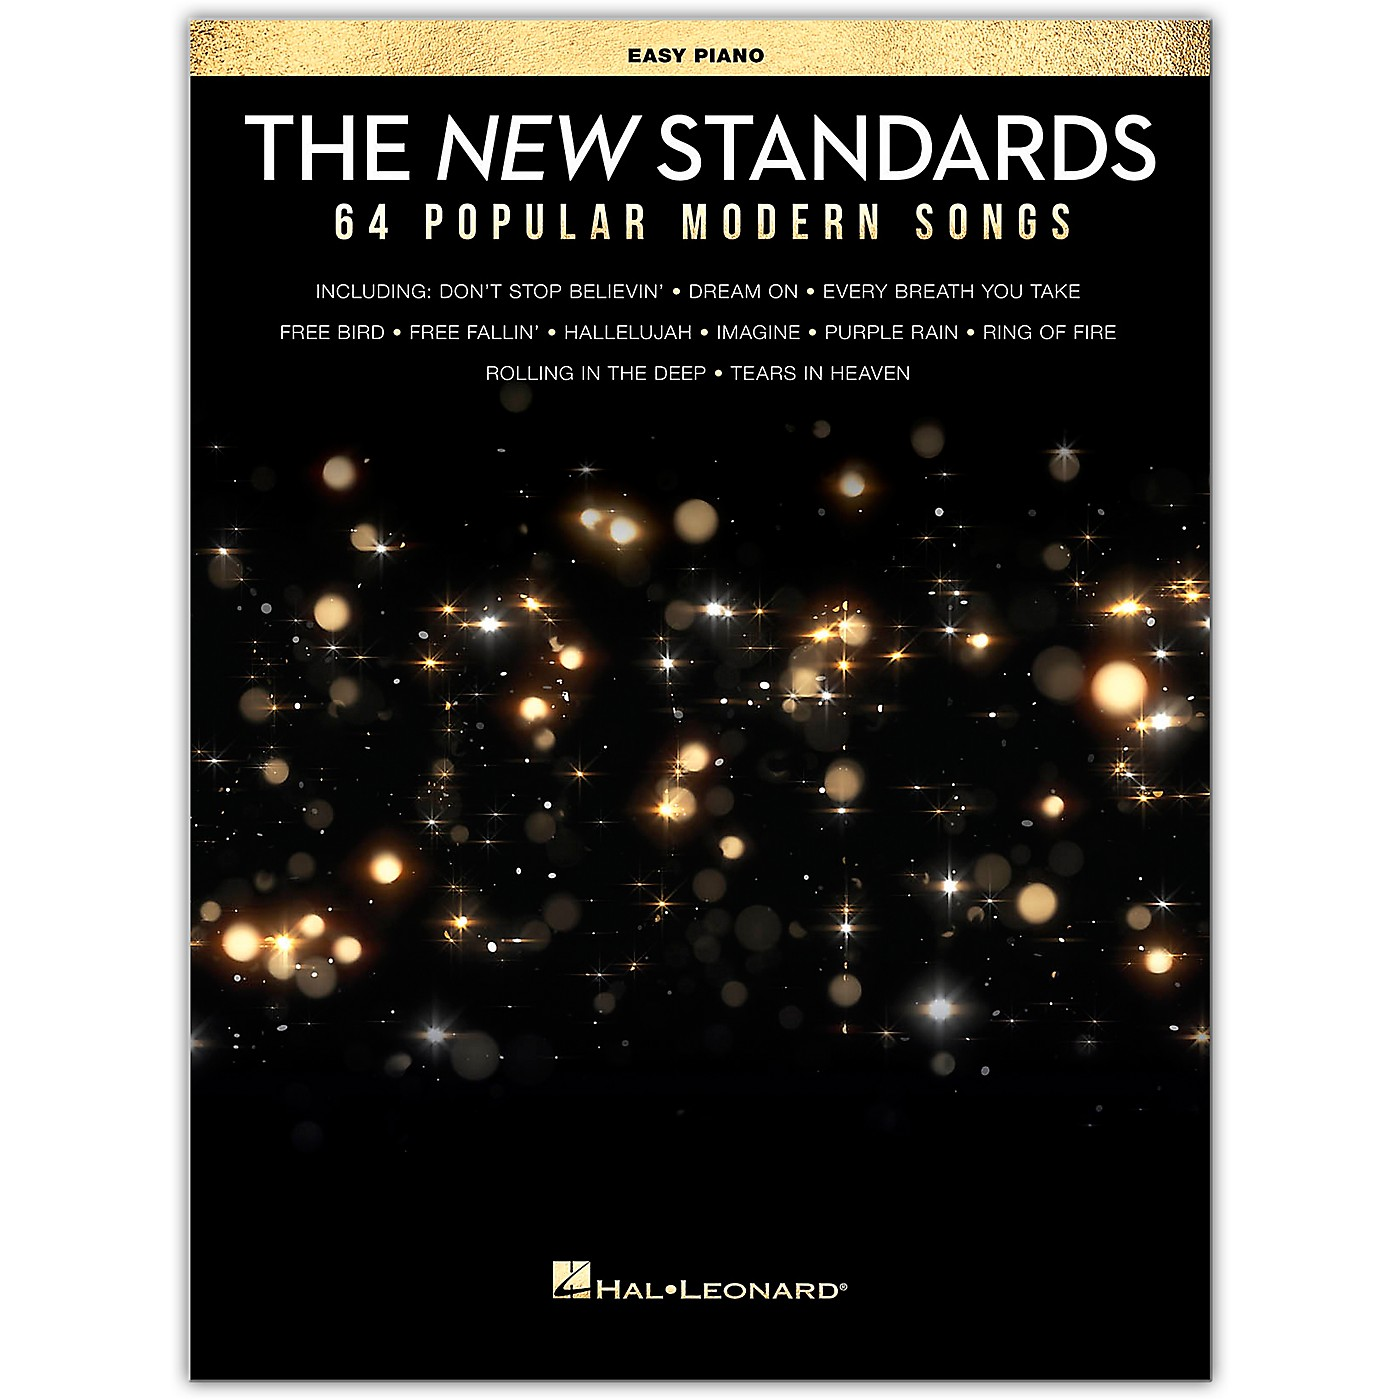 Hal Leonard The New Standards (64 Popular Modern Songs) Easy Piano Songbook thumbnail